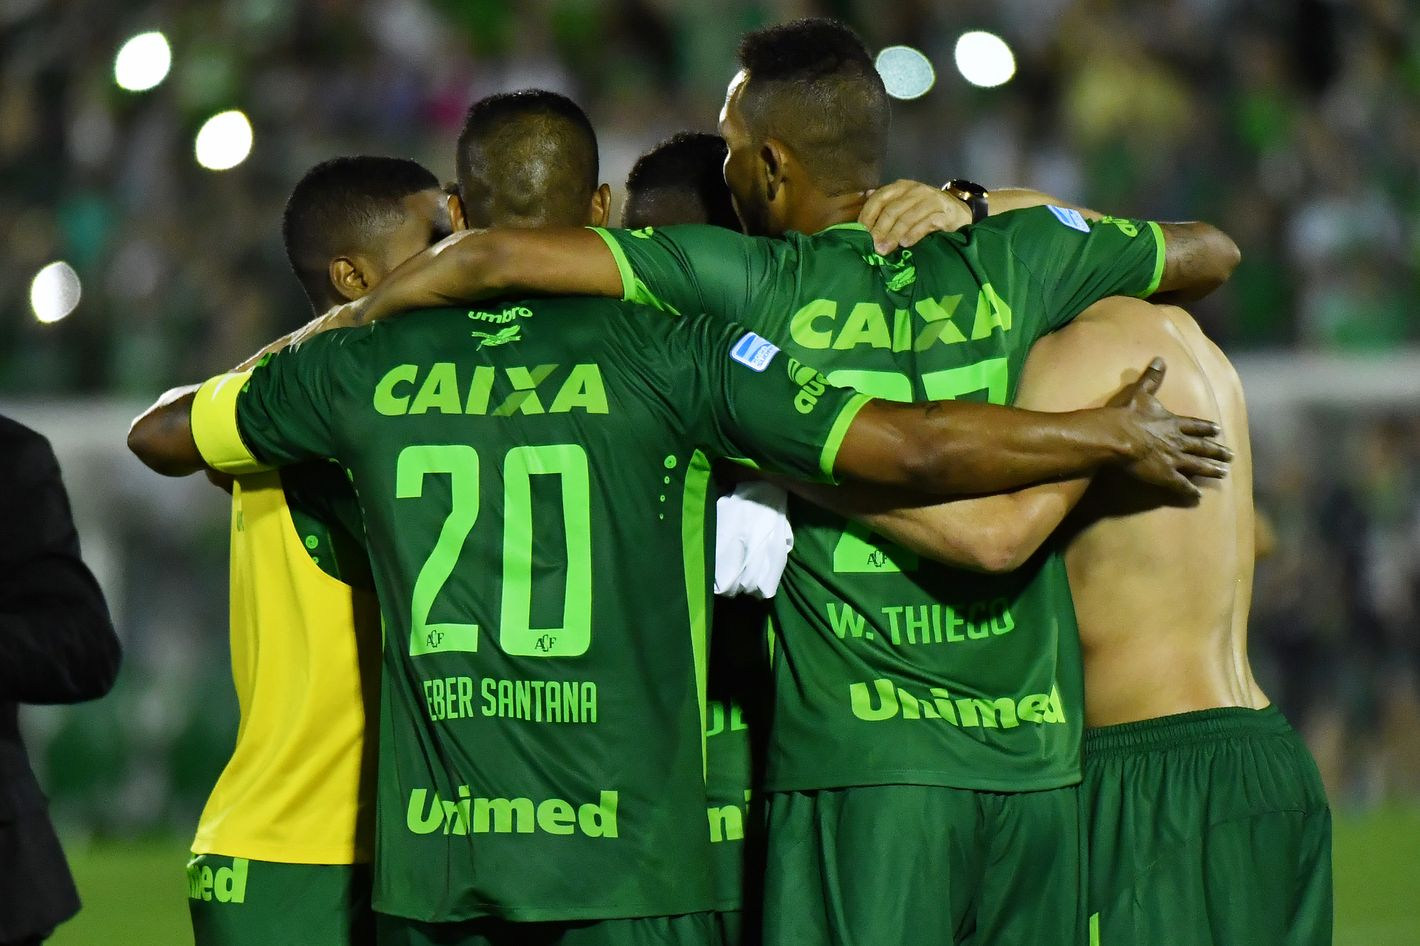 c236892dc14 Plane Carrying a Brazilian Soccer Team Crashes in Colombia, Killing More  Than 70